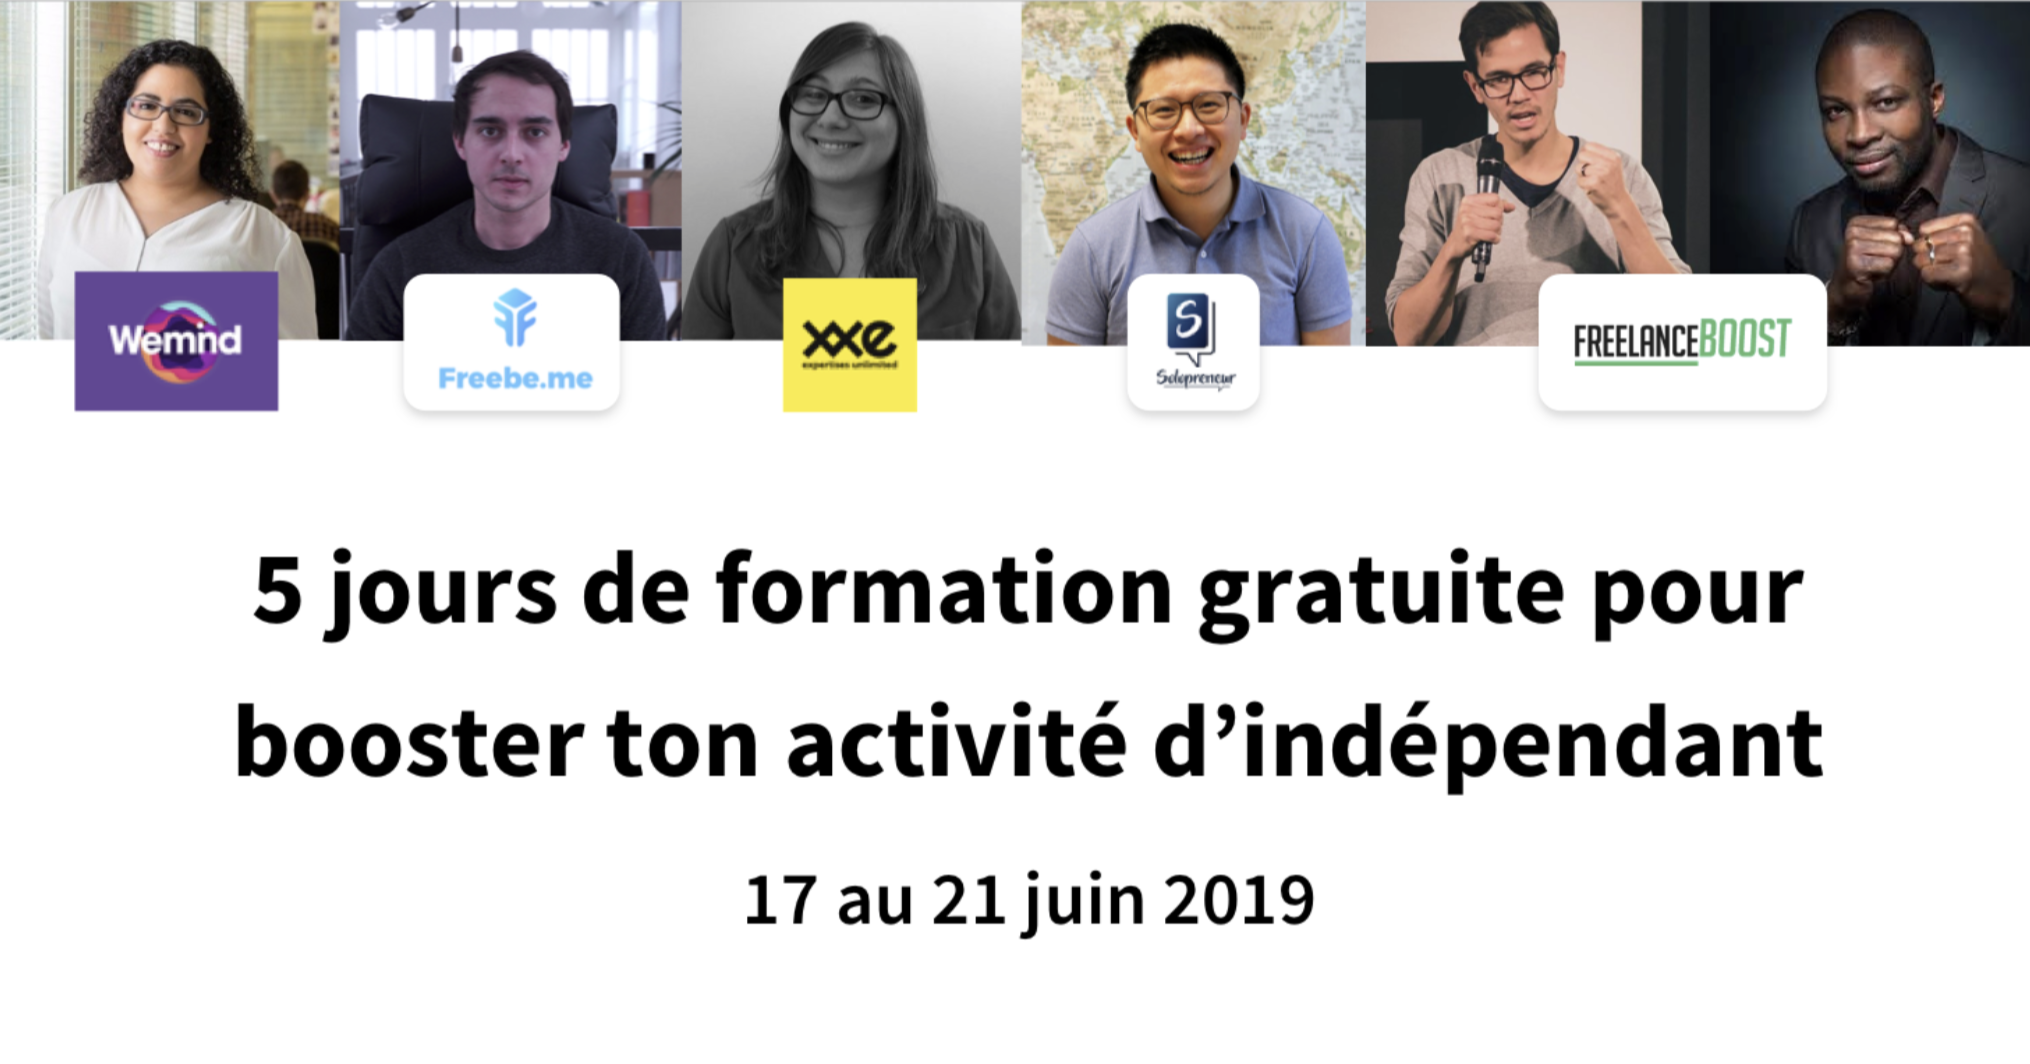 Freelance Boot Camp : 5 jours de formation gratuite !